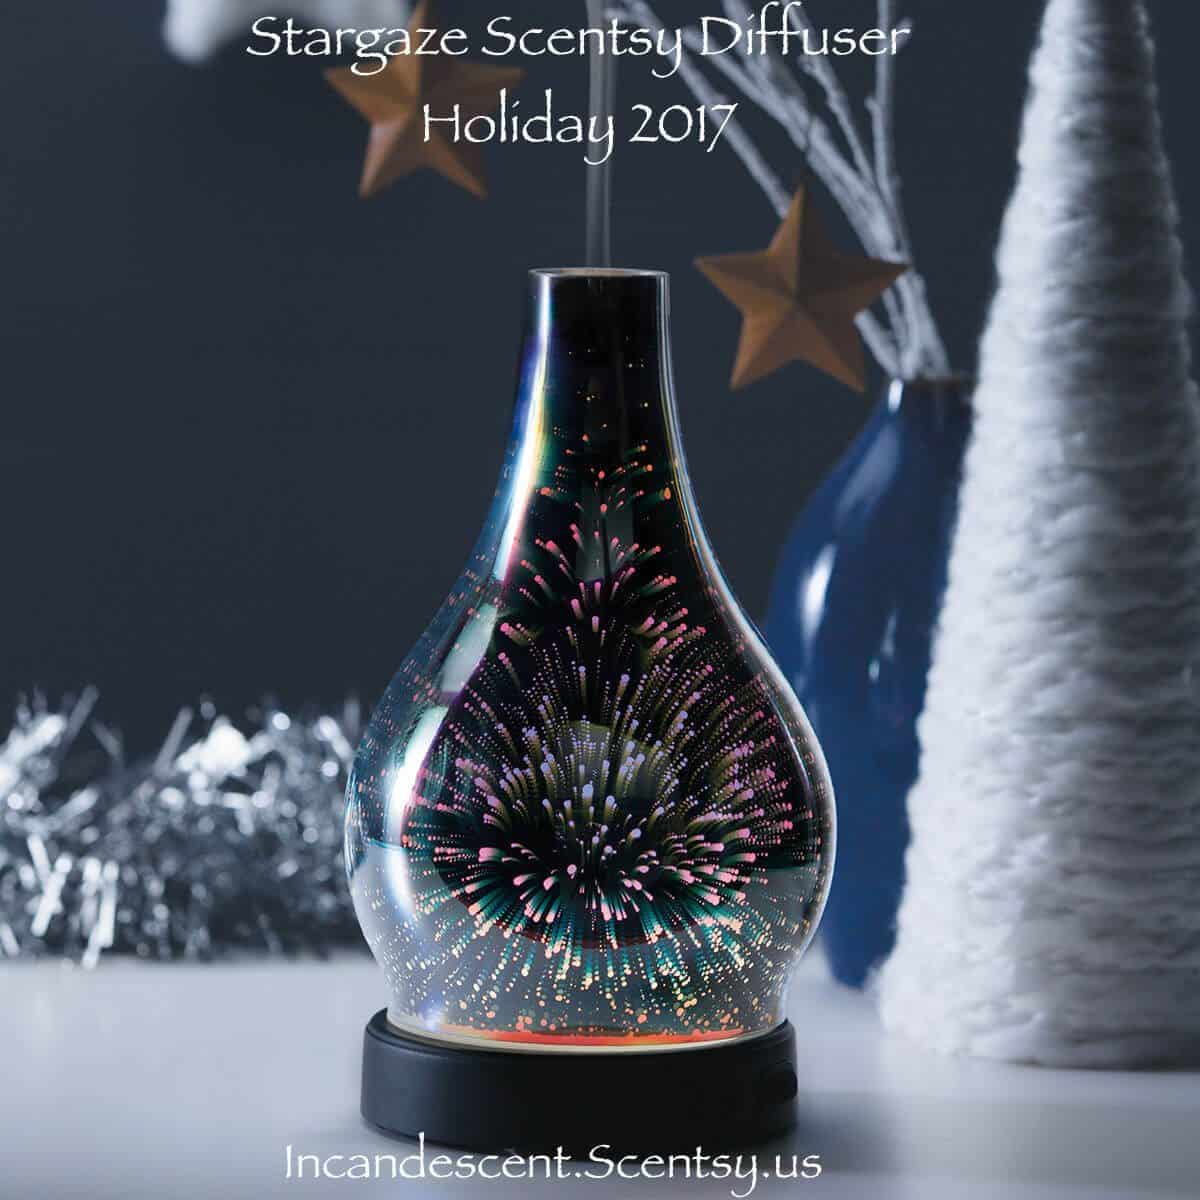 SCENTSY STARGAZE DIFFUSER - LIMITED EDITION HOLIDAY 2017